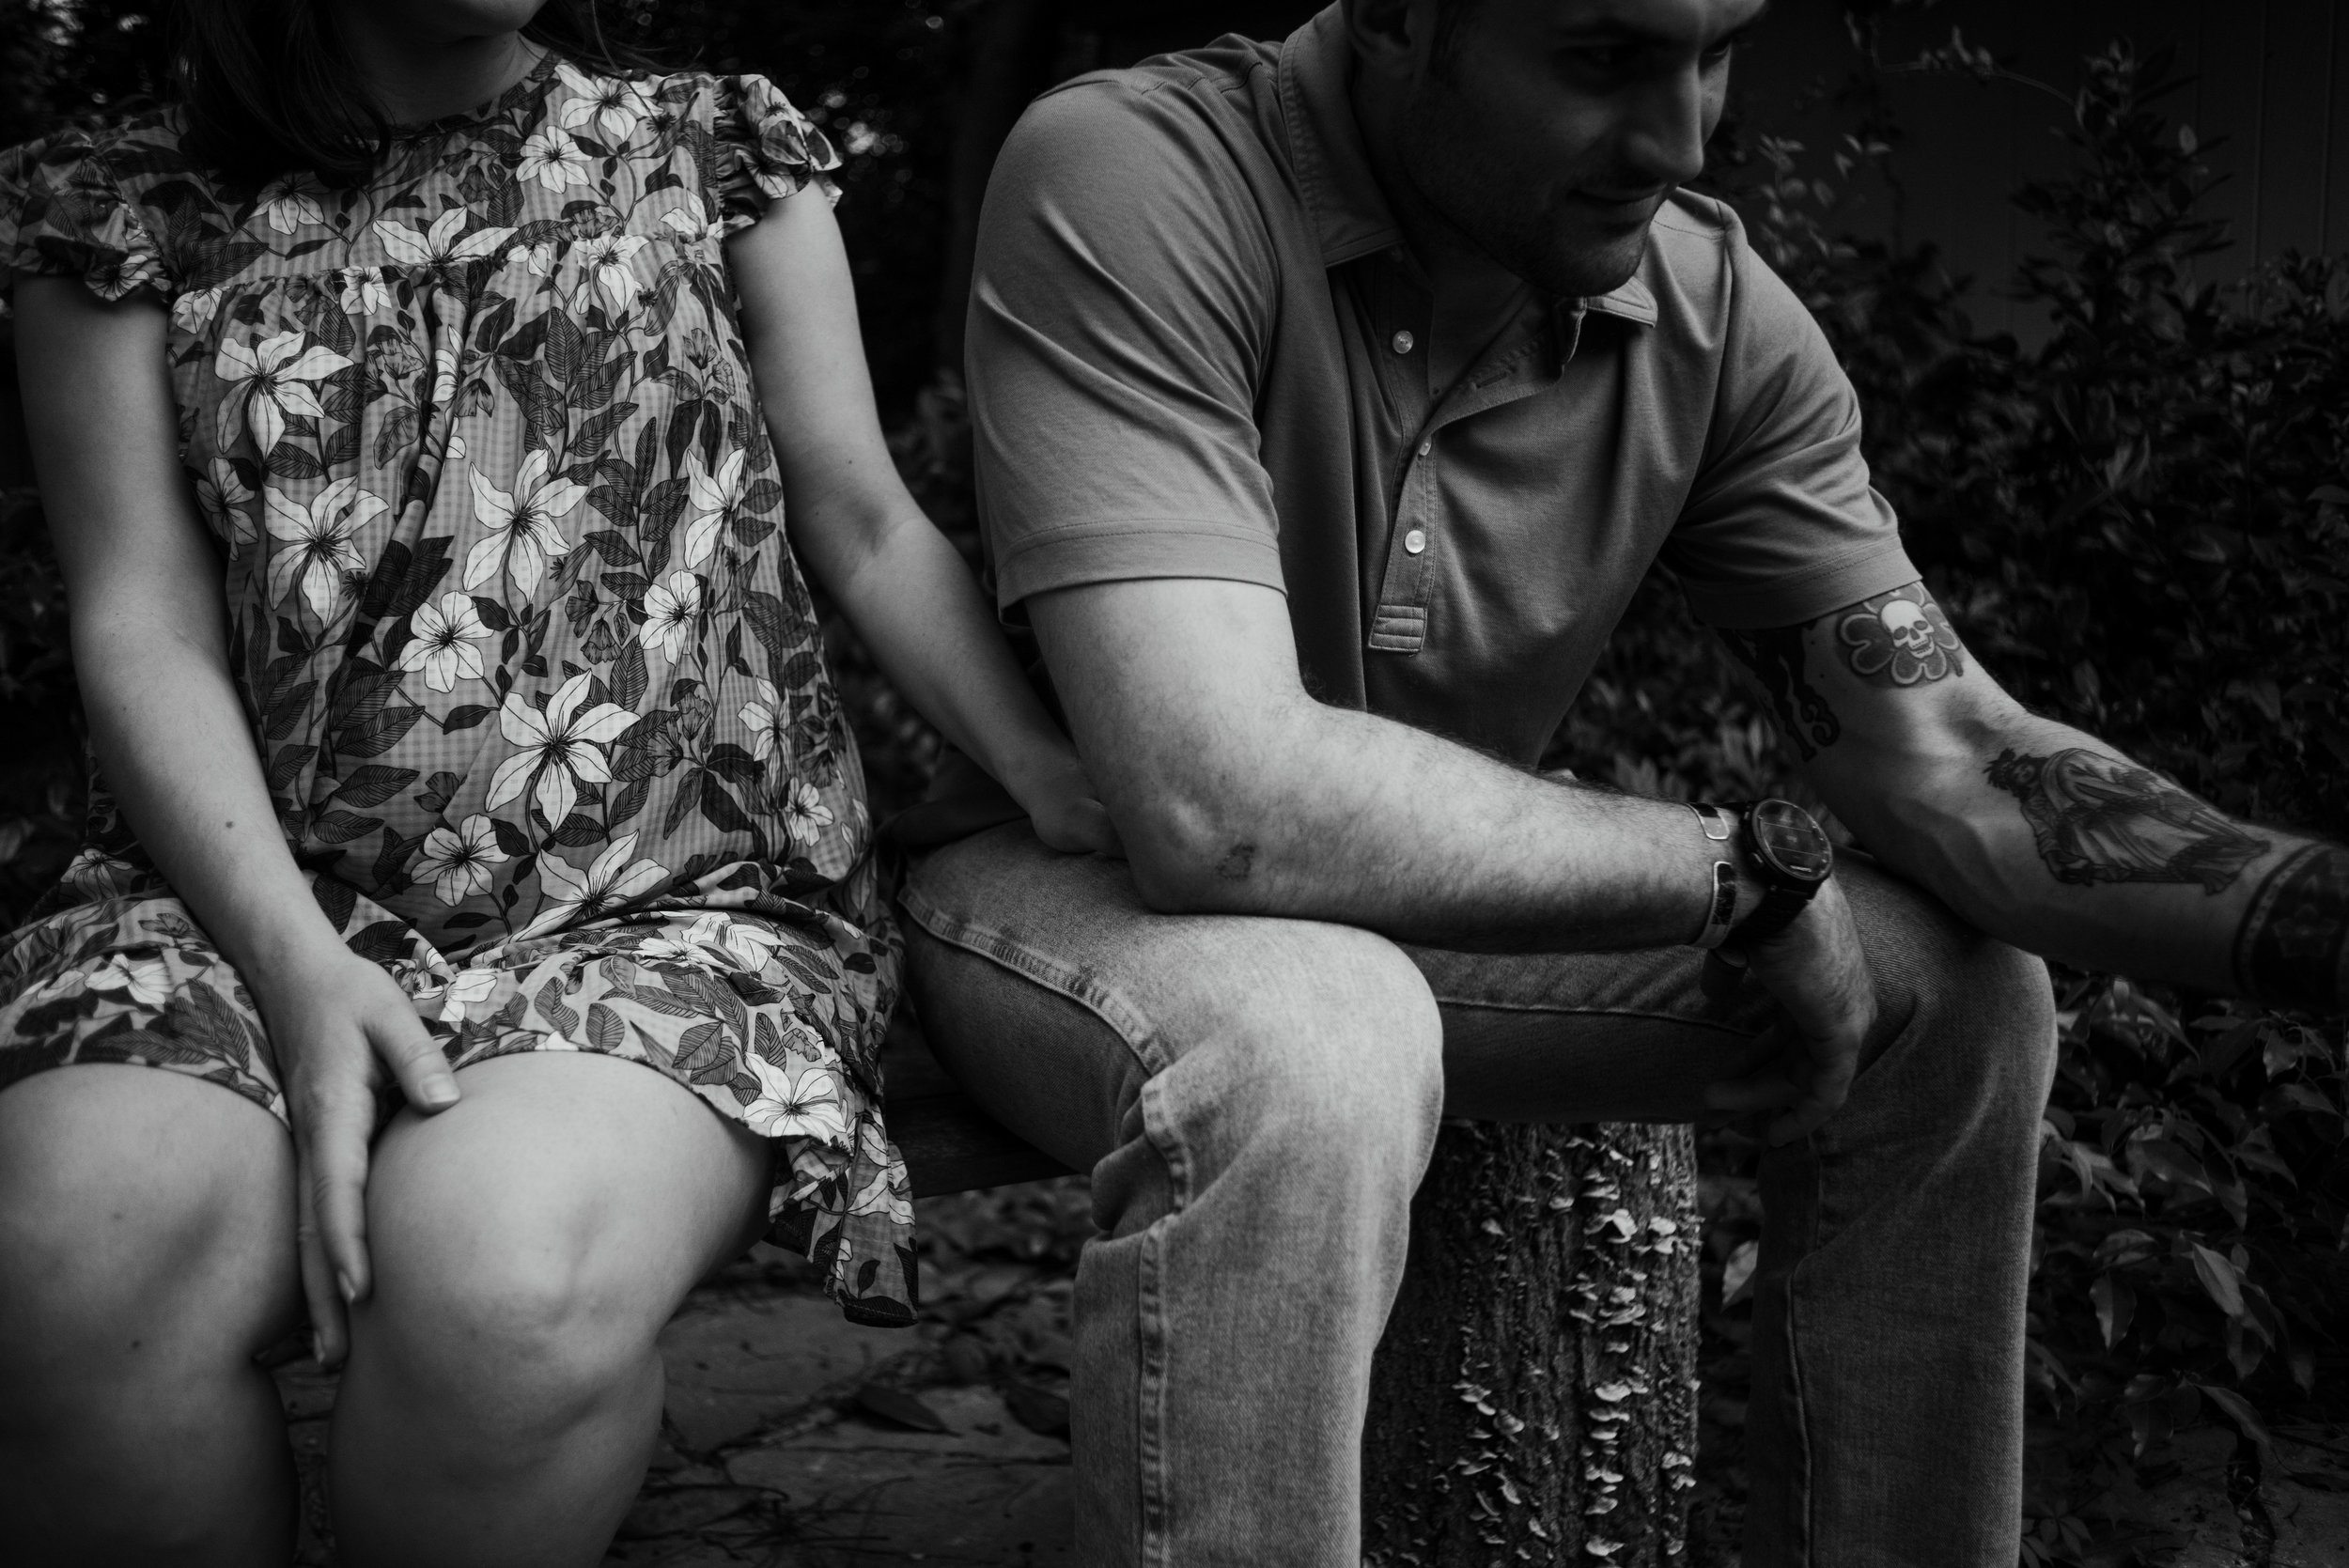 ellie-and-anthony-maternity-photos-june-2018 (41 of 189).jpg